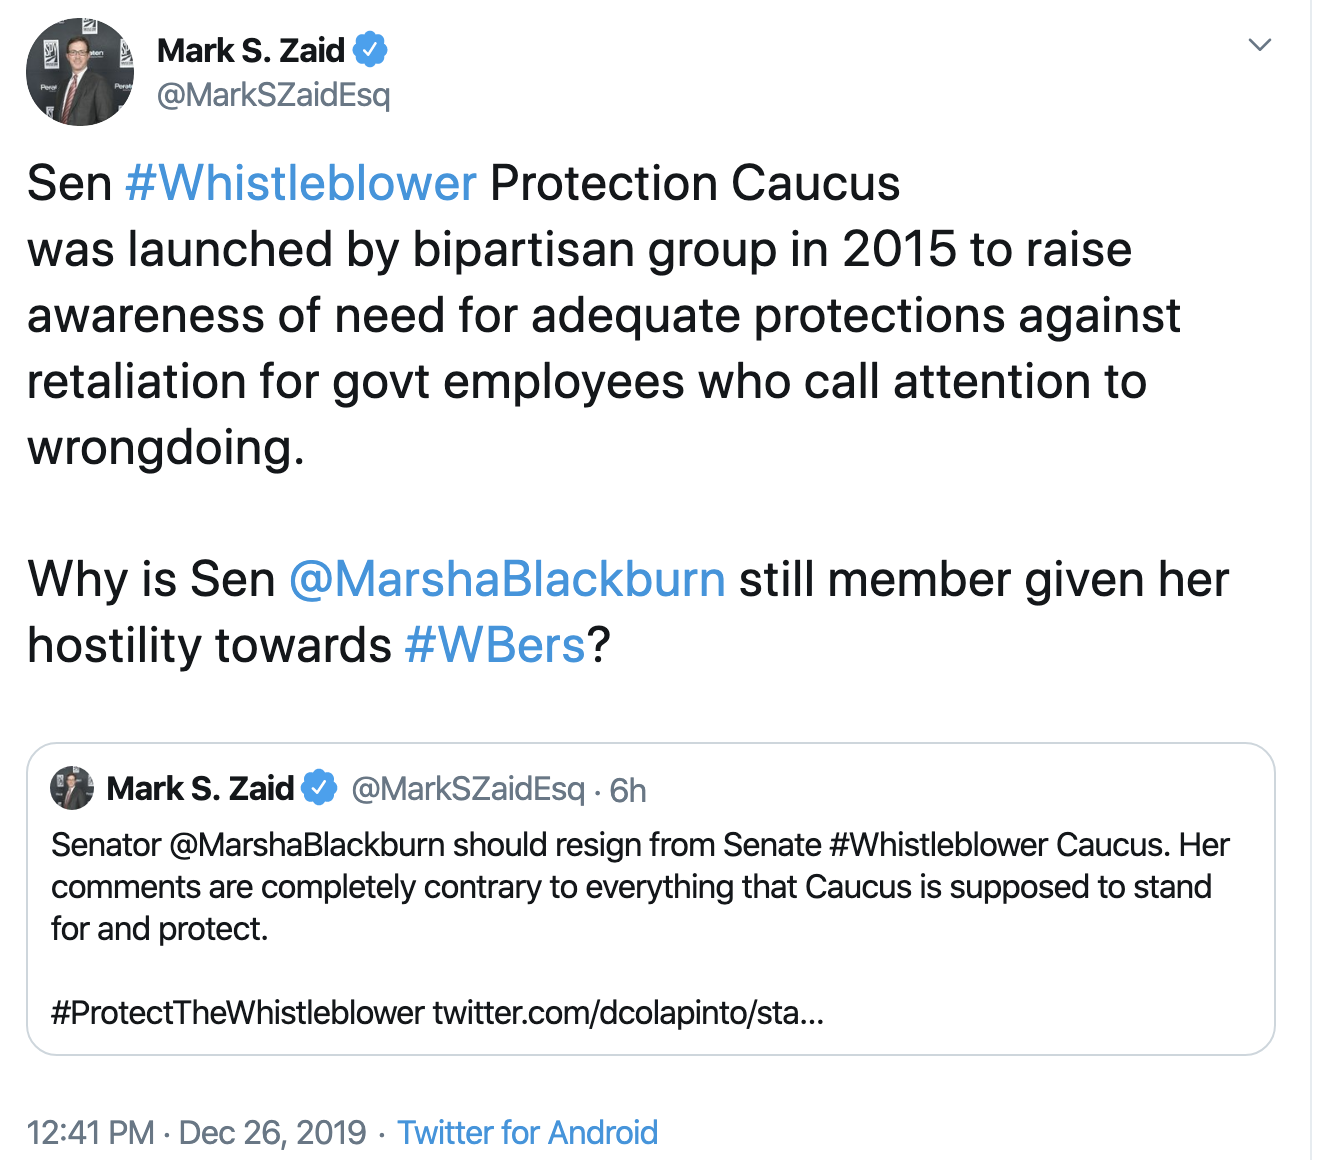 Screen-Shot-2019-12-26-at-3.38.12-PM Anti-Whistleblower GOP Rep. Joins Whistleblower Protection Caucus Corruption Crime Election 2016 Election 2020 Featured Top Stories